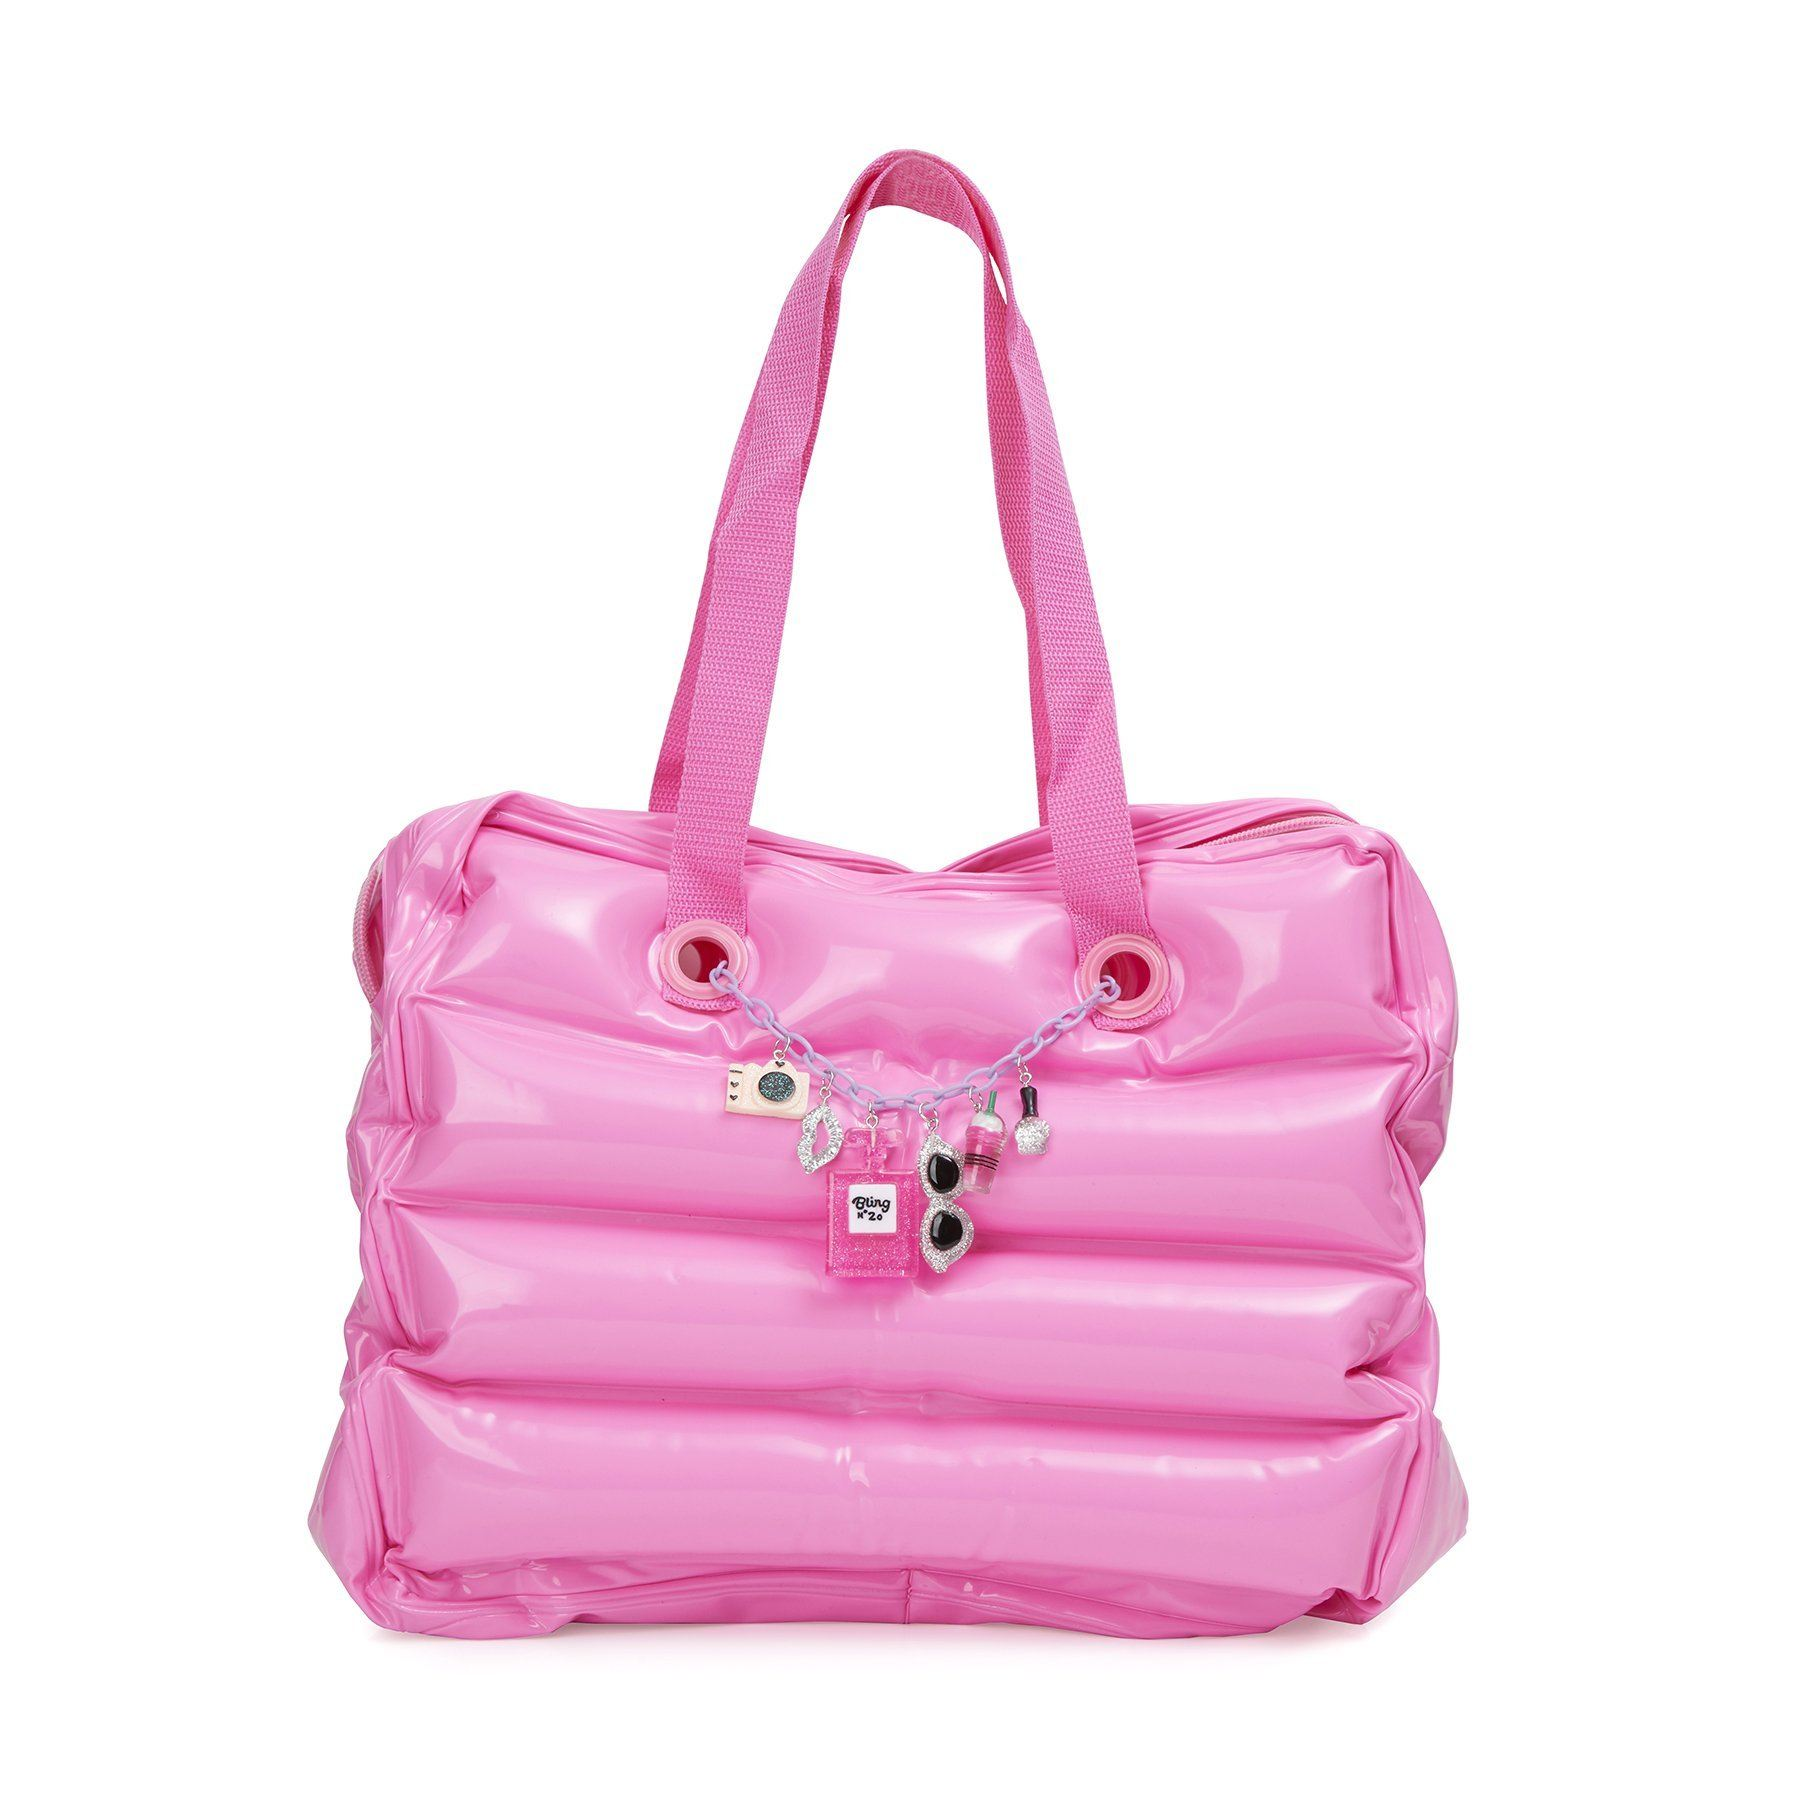 Inflatable Pool Bag Gifts Bling2.0